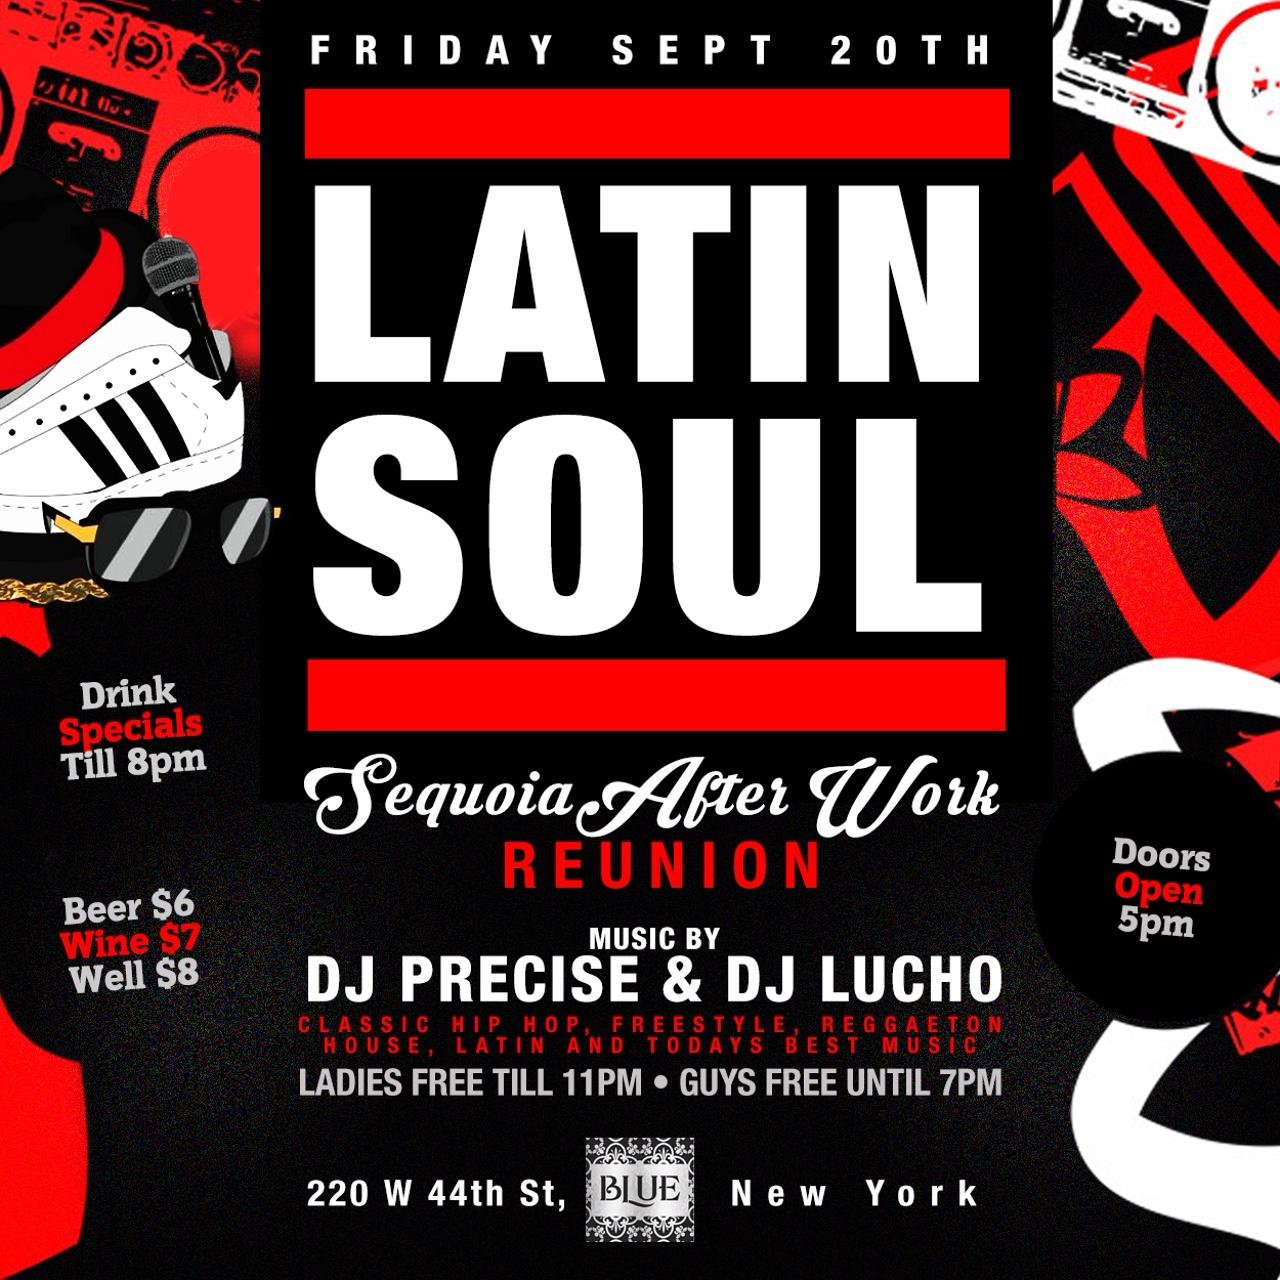 Latin Soul - afterwork party at Blue Midtown